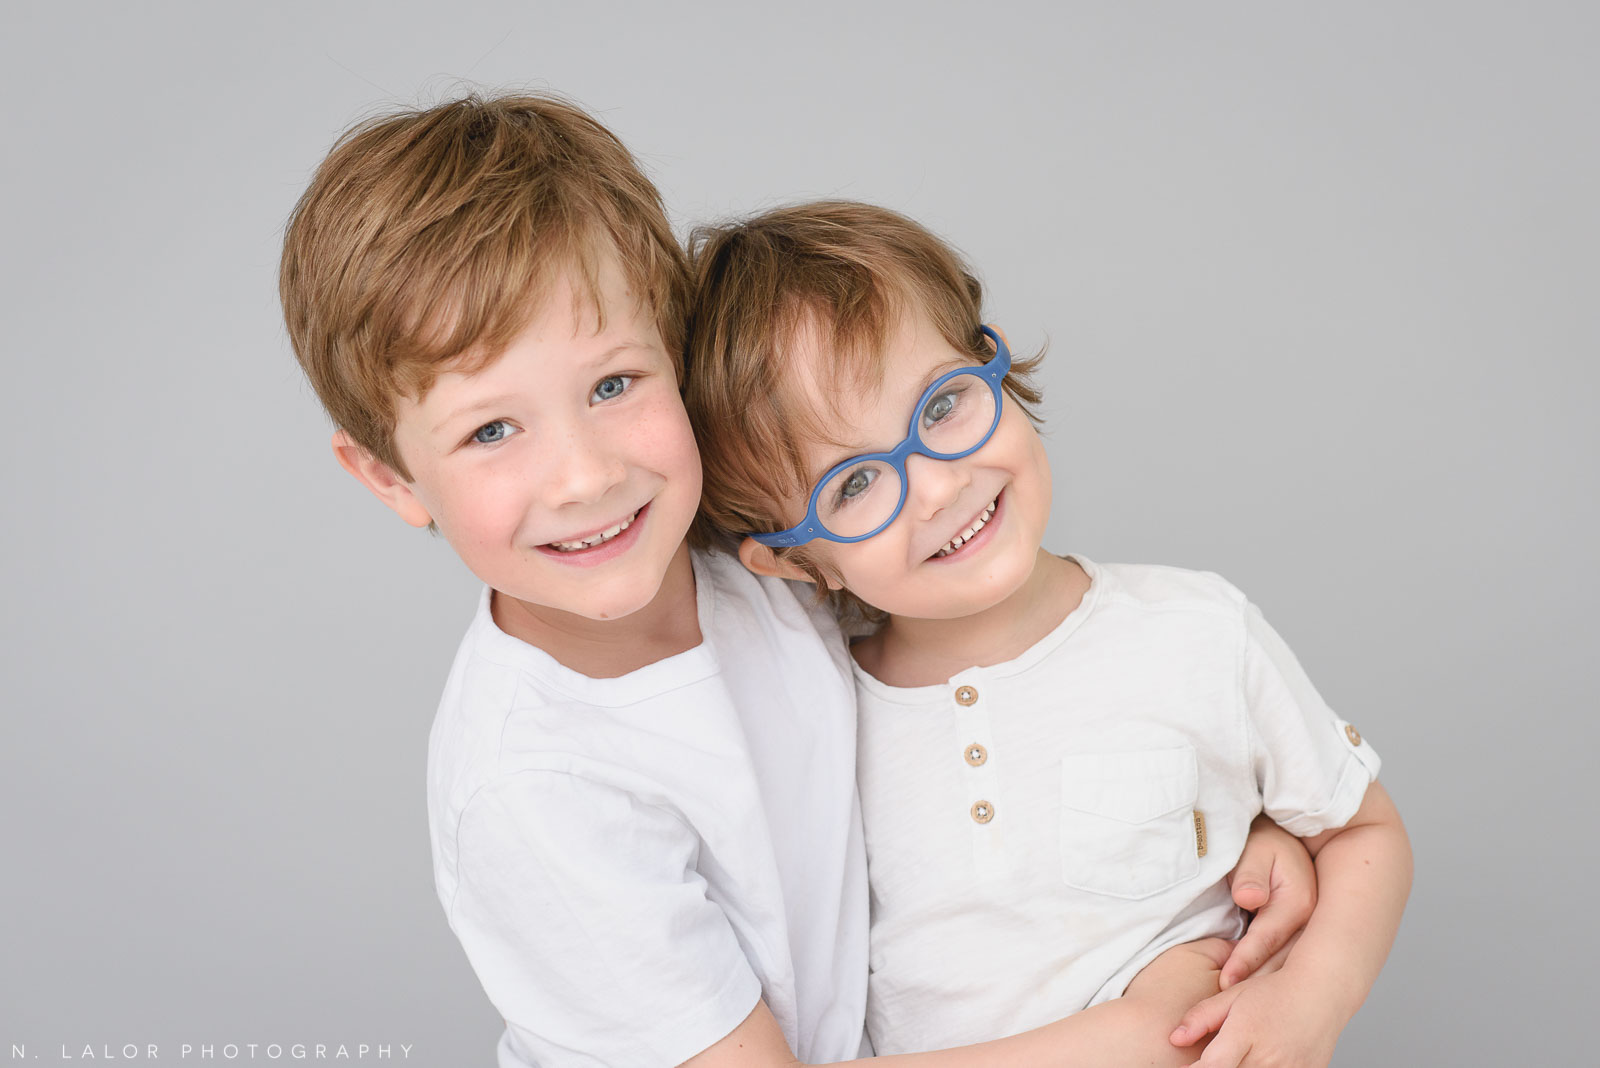 Photography of two brothers, smiling. Studio portrait by N. Lalor Photography in Greenwich, Connecticut.